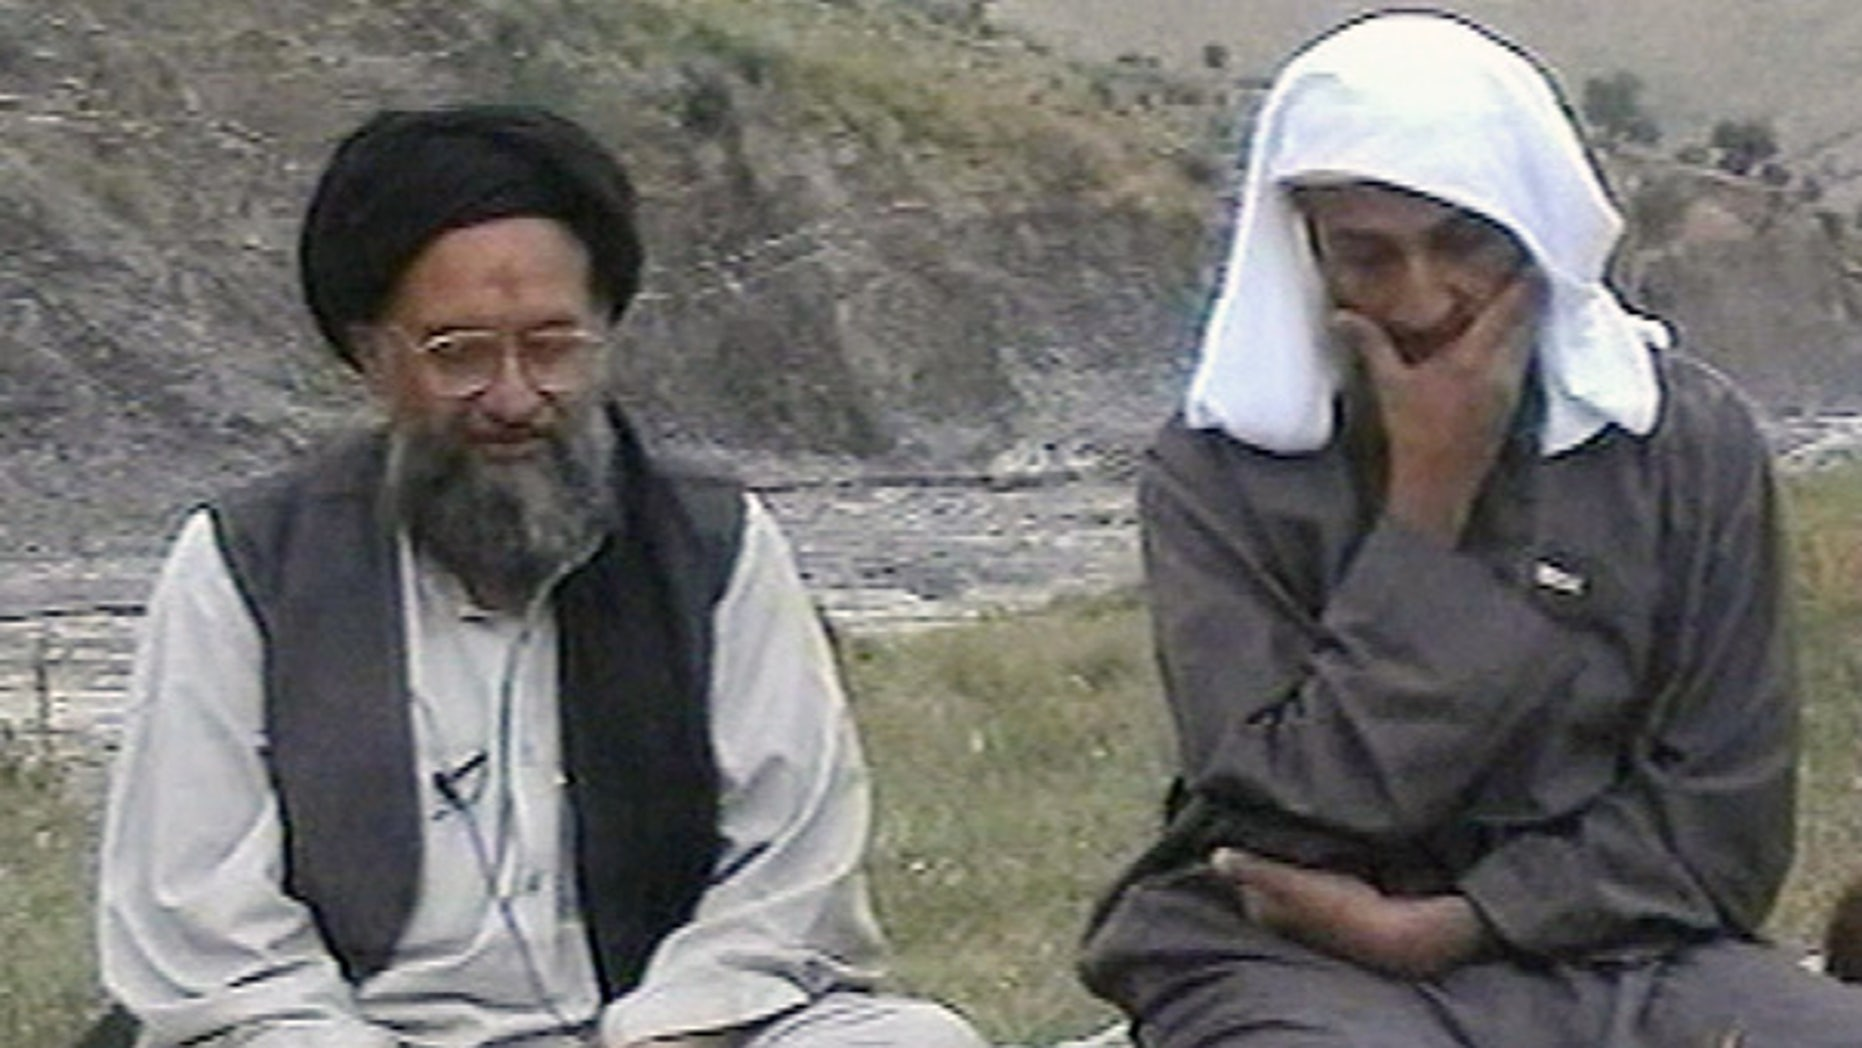 Al Qaeda chief Usama bin Laden, right, listens to his top deputy Ayman al-Zawahri speaking at an undisclosed location.